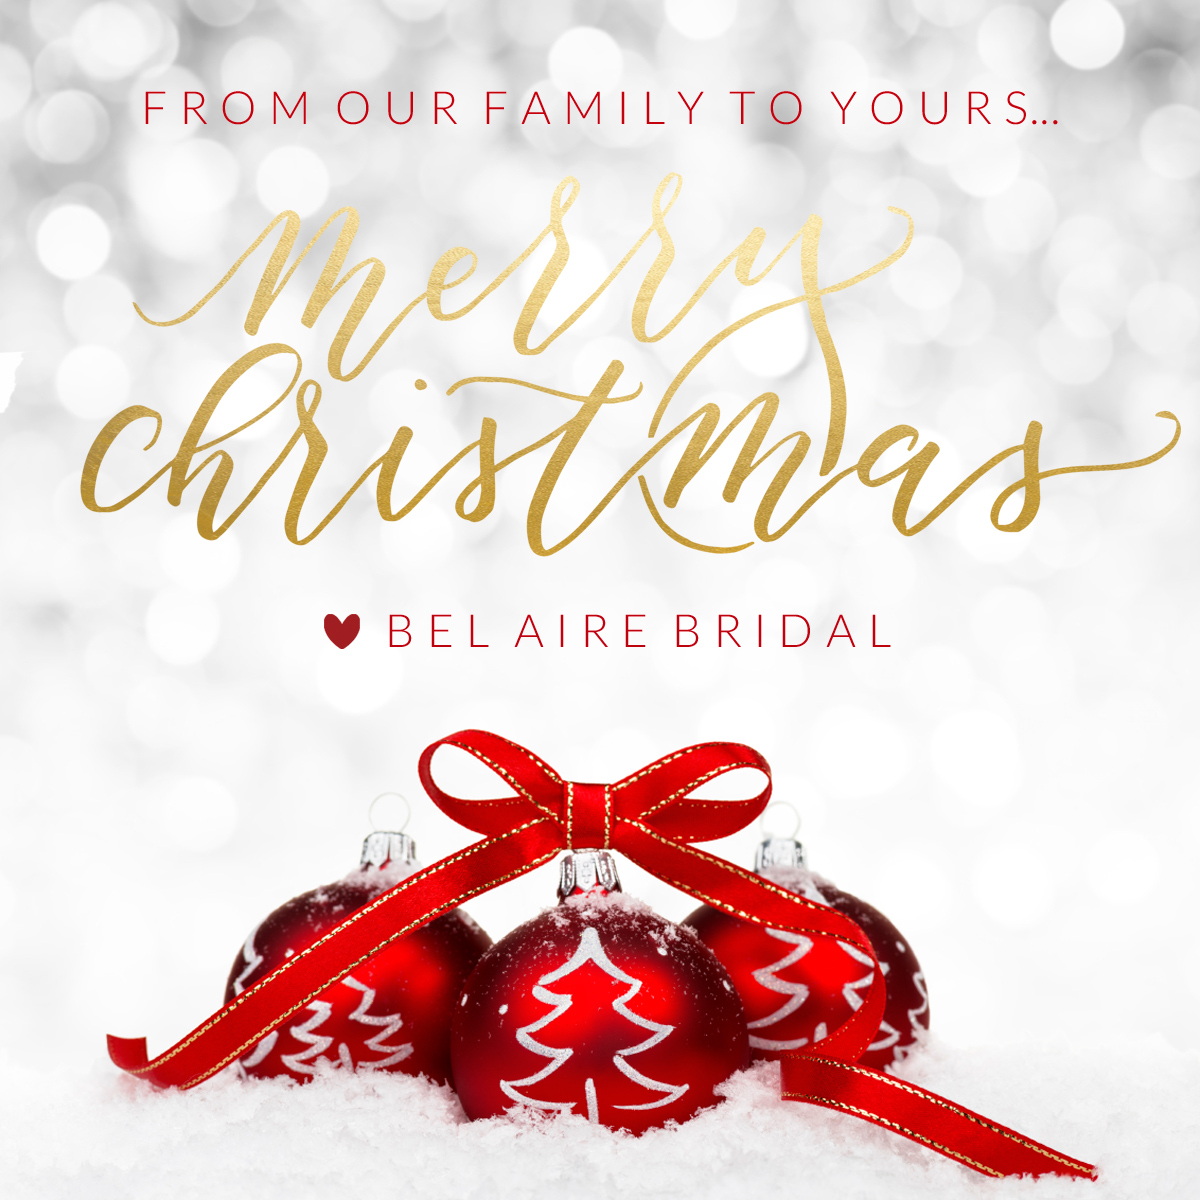 Merry-Christmas-Bel-Aire-Bridal-2015